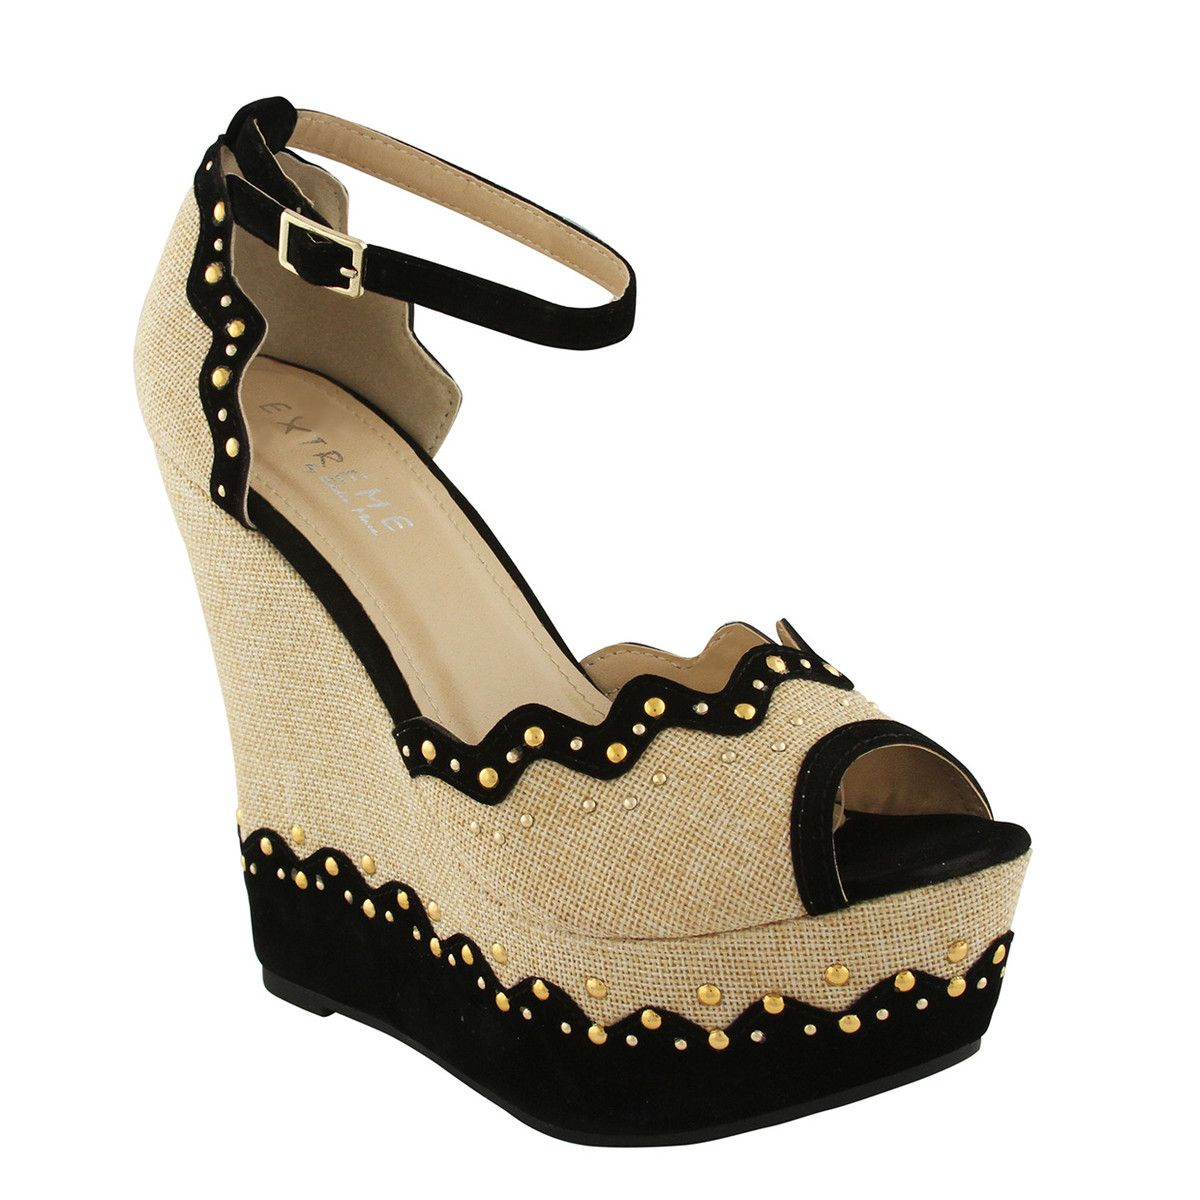 Bonnie Studded Wedge Black $49